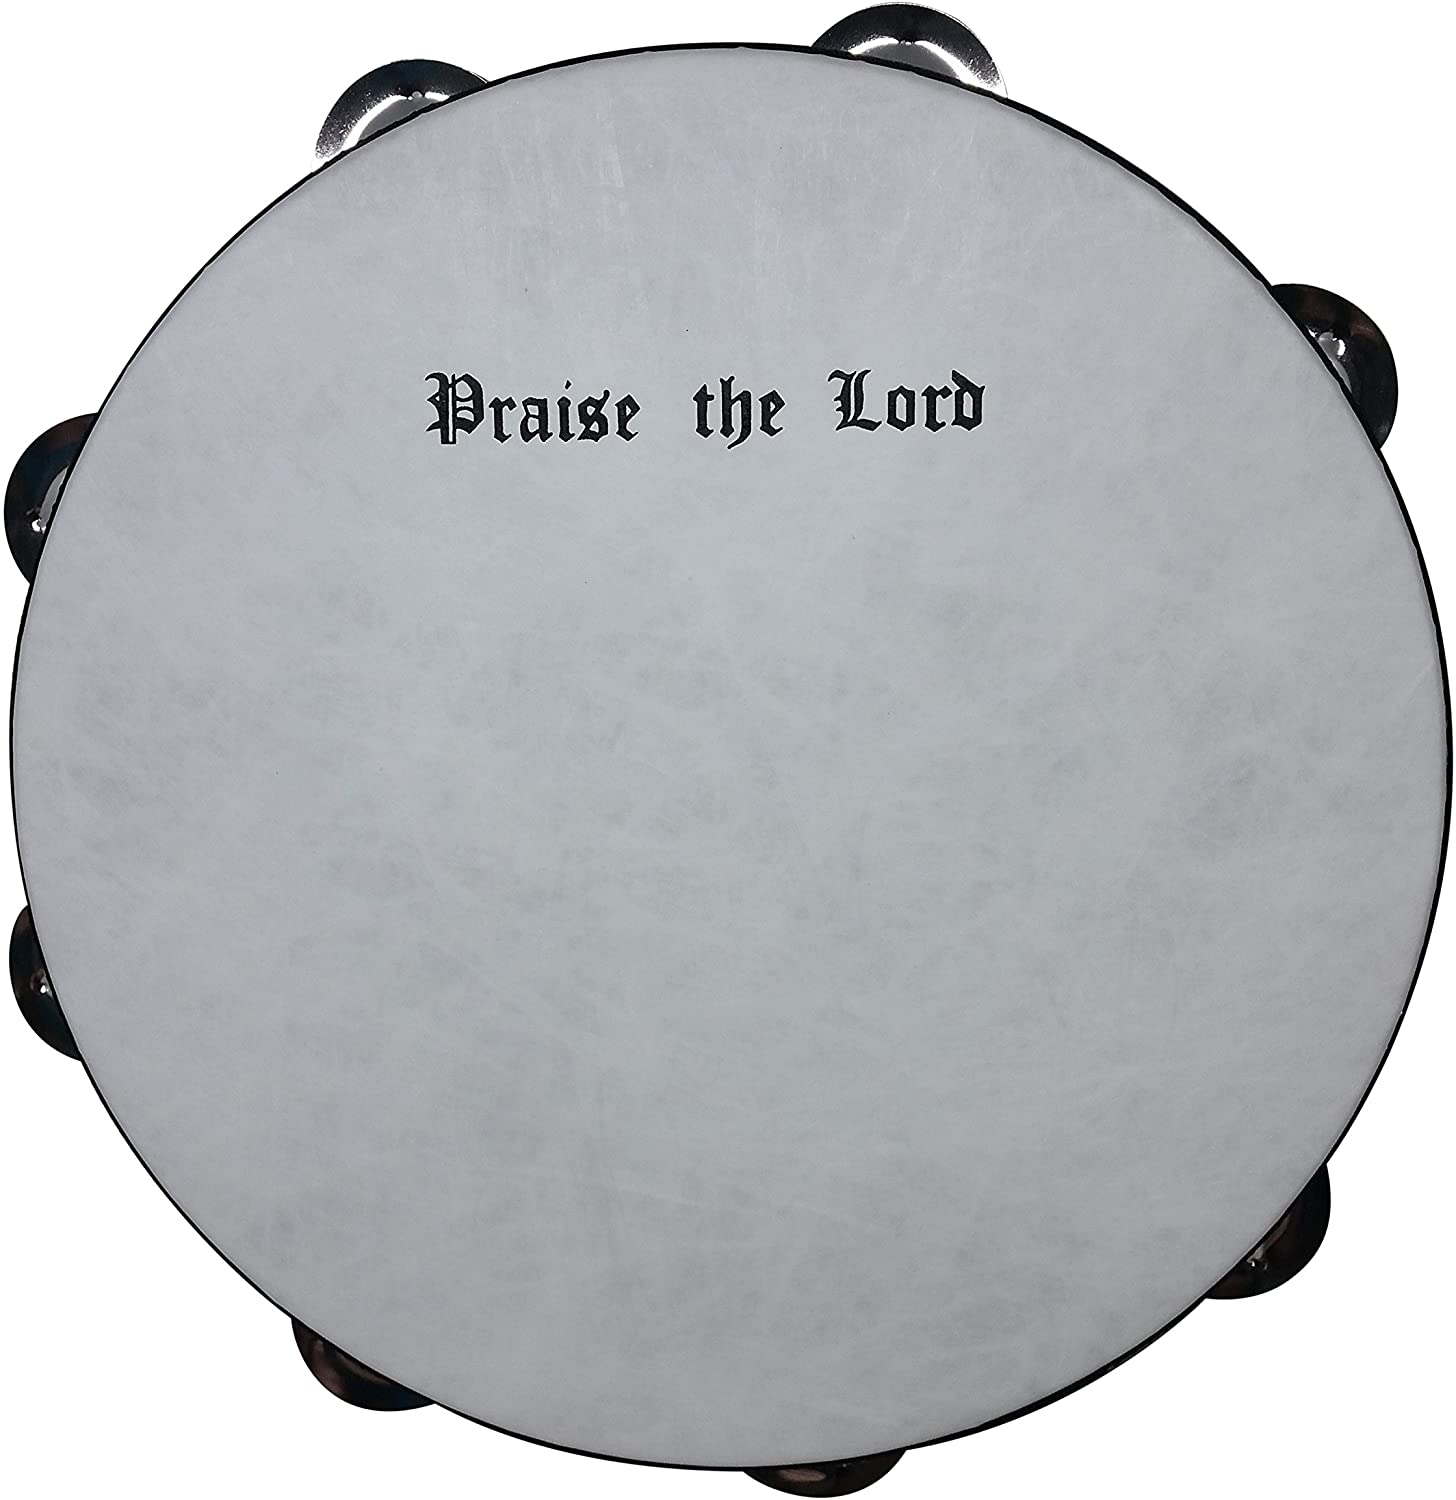 Rhythm Band Instruments PTAM10D Praise the Lord Wooden Tambourine 10 Inch with 16 Pairs of Double Row Jingles Black